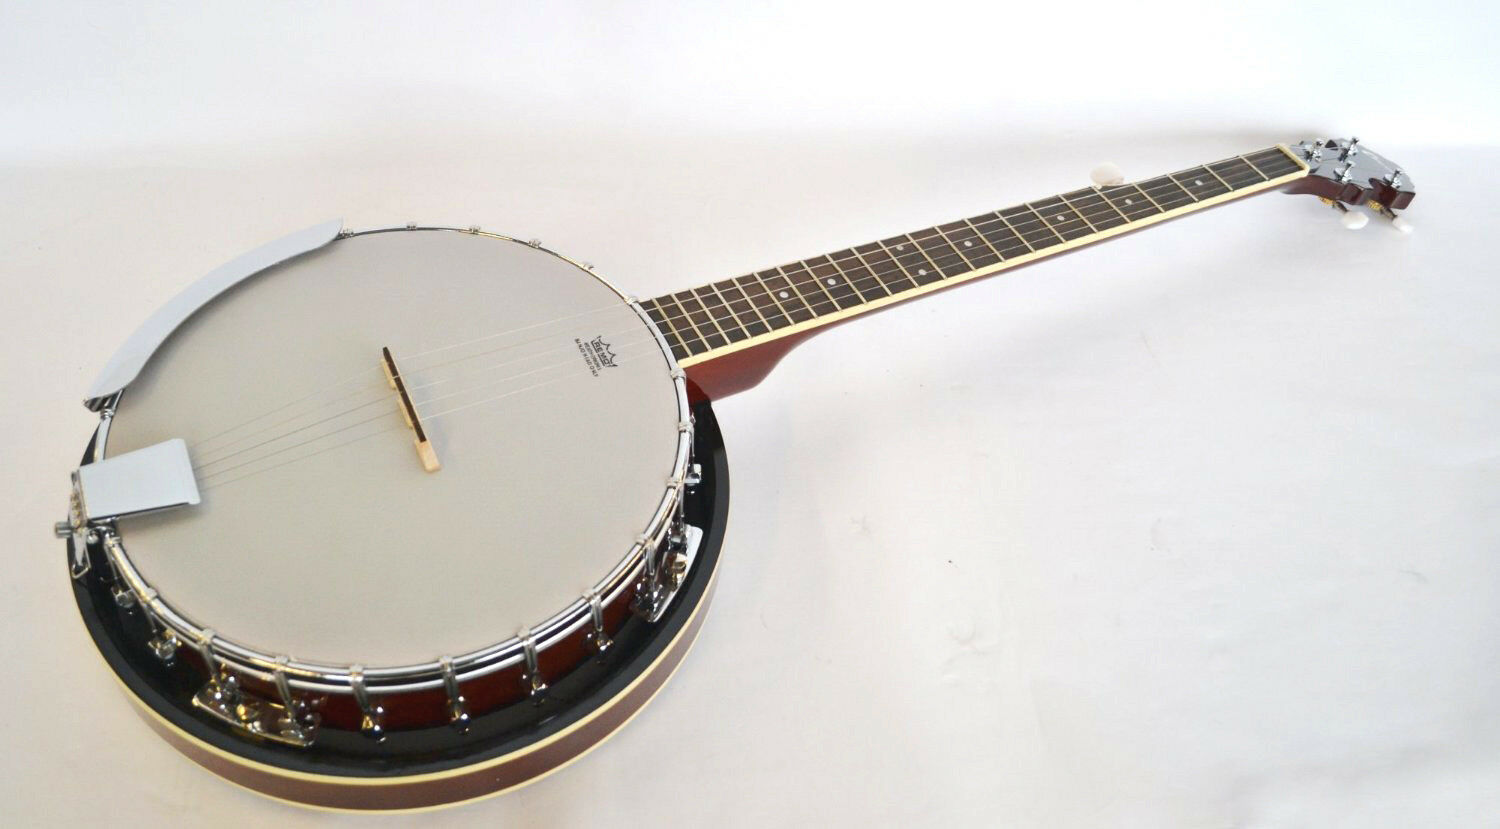 NEW CLEARWATER ELECTRO ACOUSTIC G BlauGRASS BANJO 5 STRING